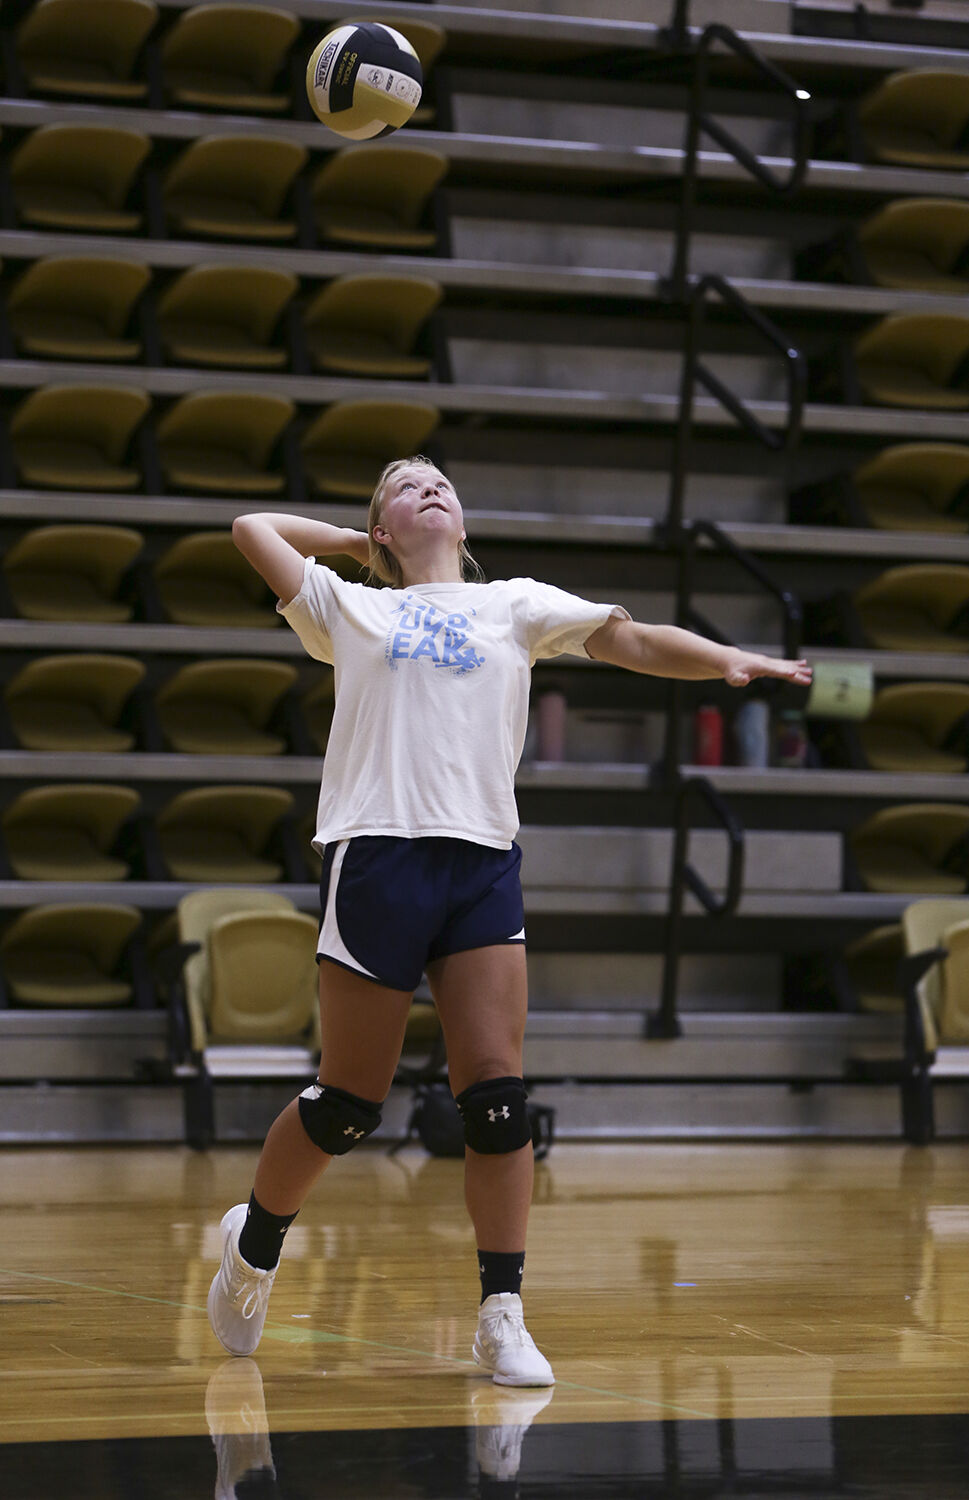 Molly Andrews waits for the ball before serving during a scrimmage